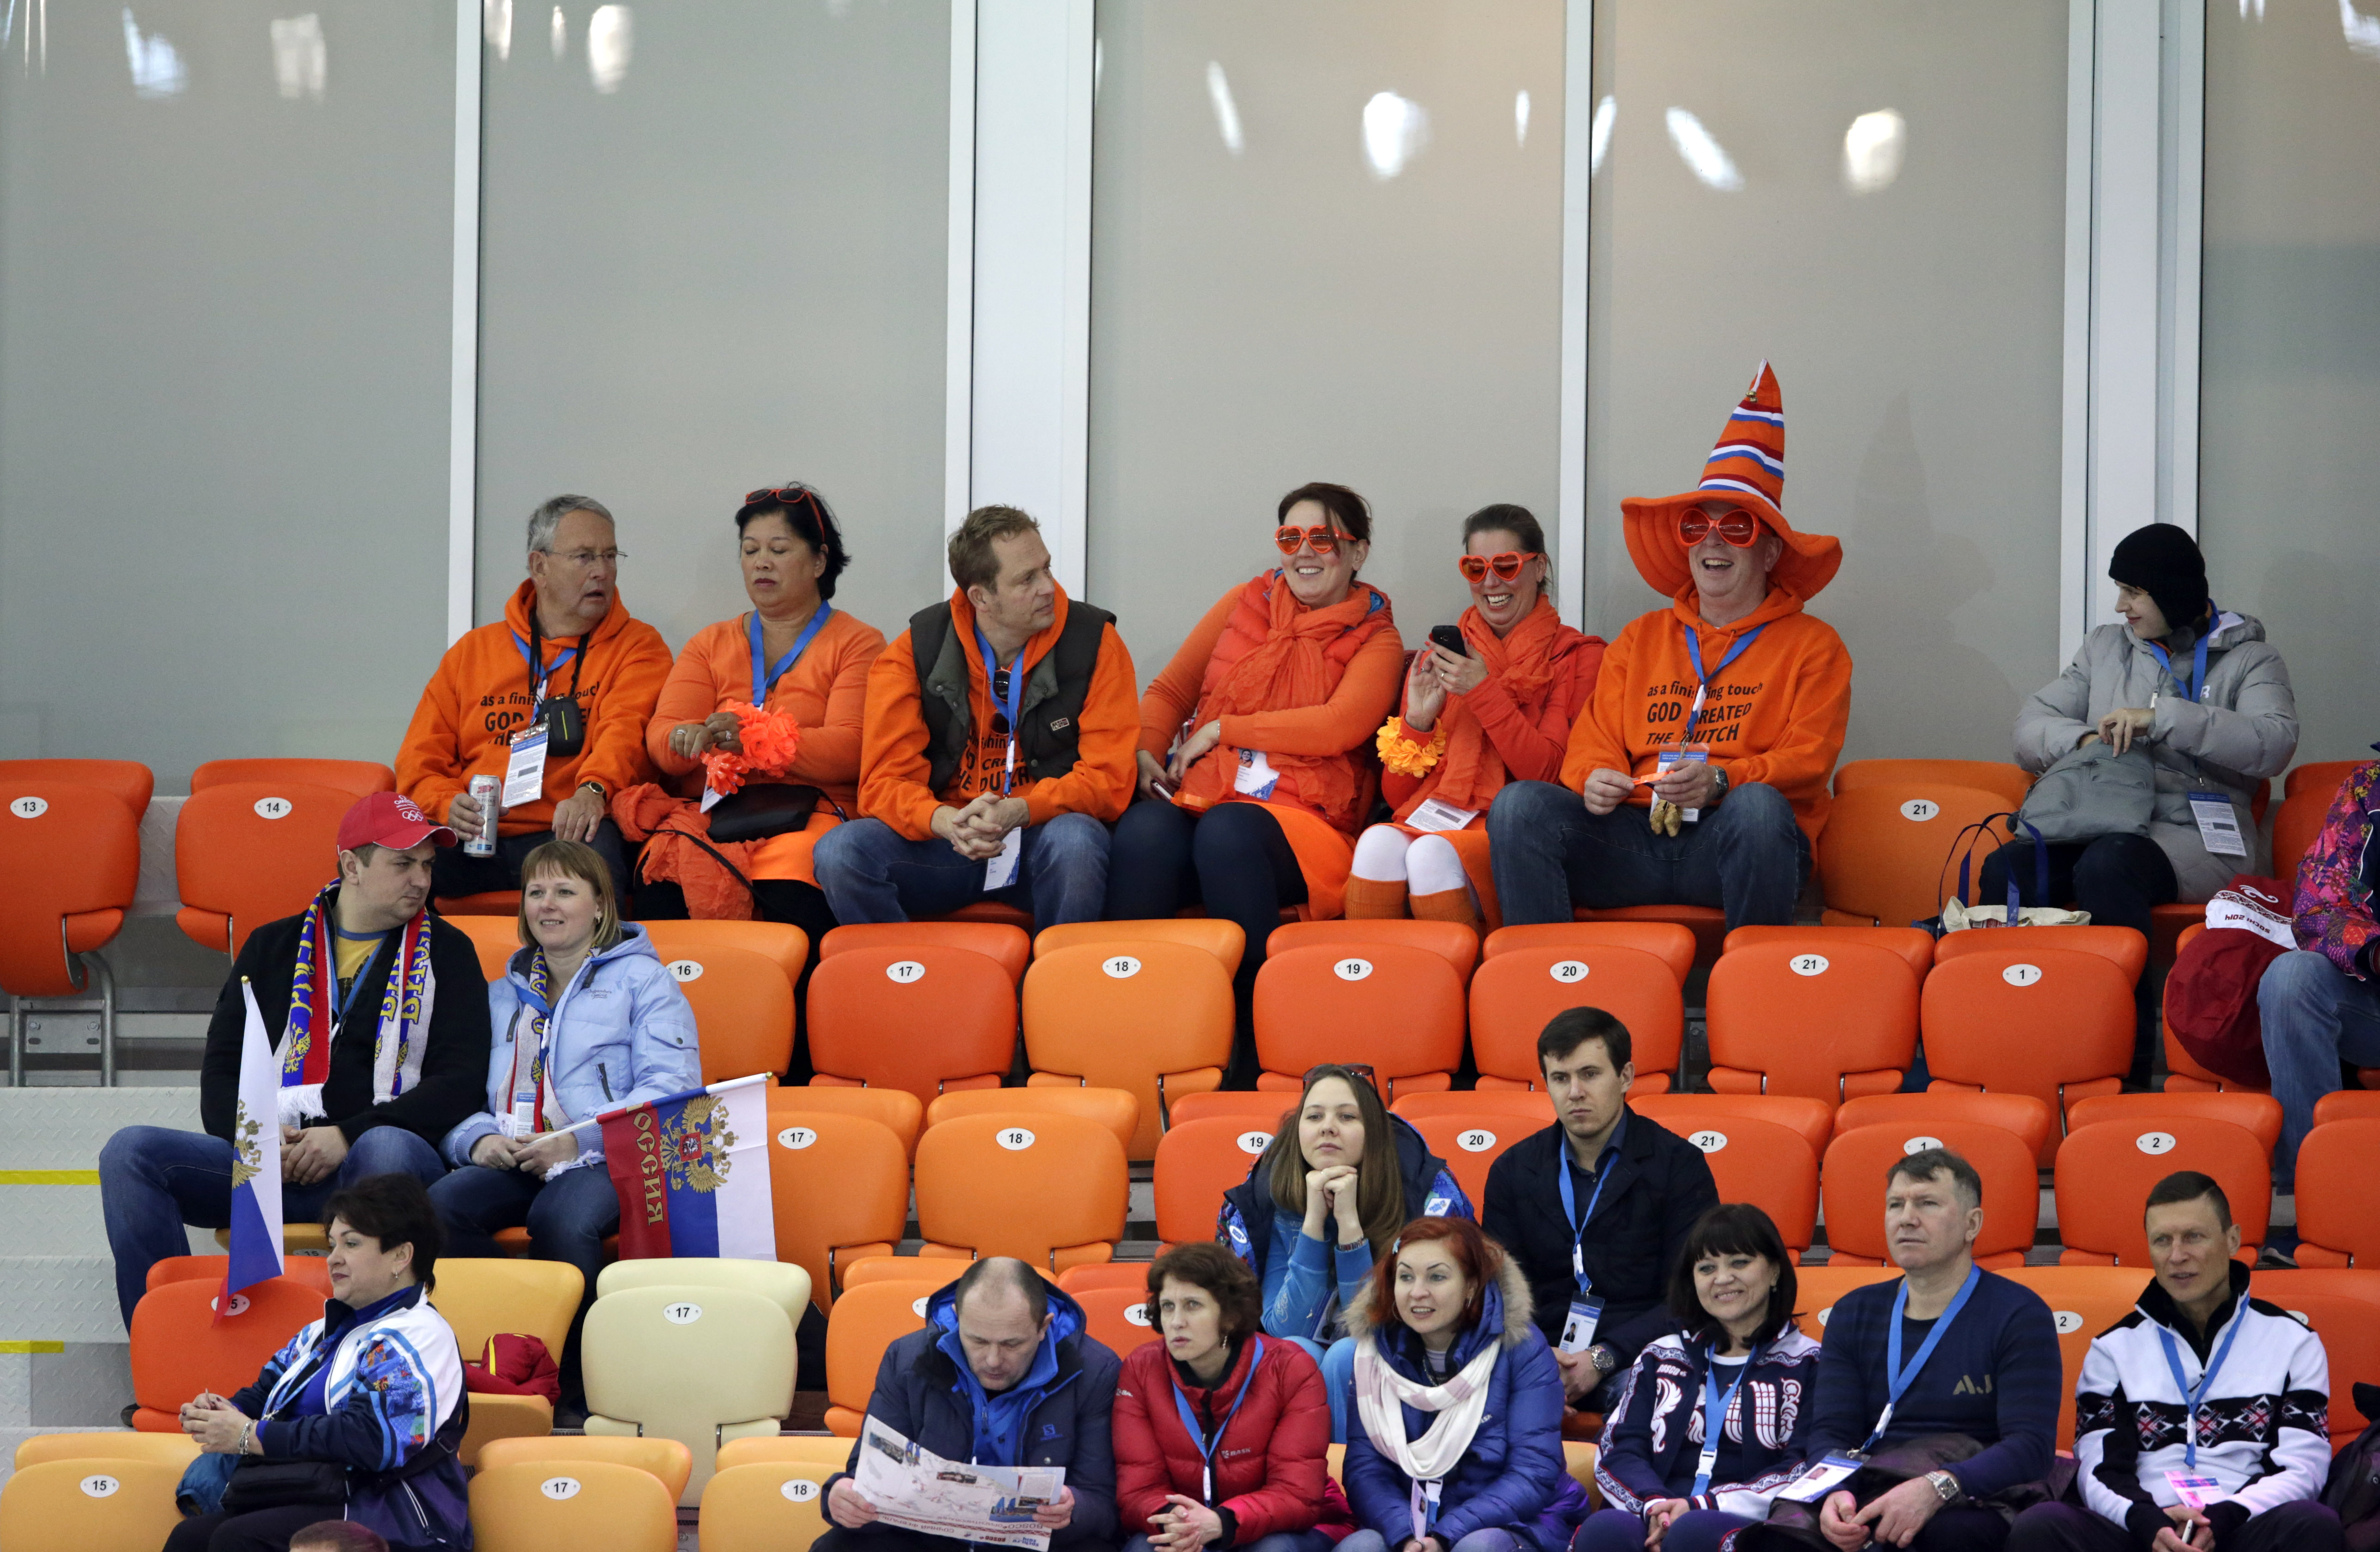 Empty seats are seen as Dutch skating fans wait for the start of the men's 5,000-meter speedskating race at the Adler Arena Skating Center at the 2014 Winter Olympics in Sochi, Russia, Saturday, Feb. 8, 2014. (AP Photo/Matt Dunham)